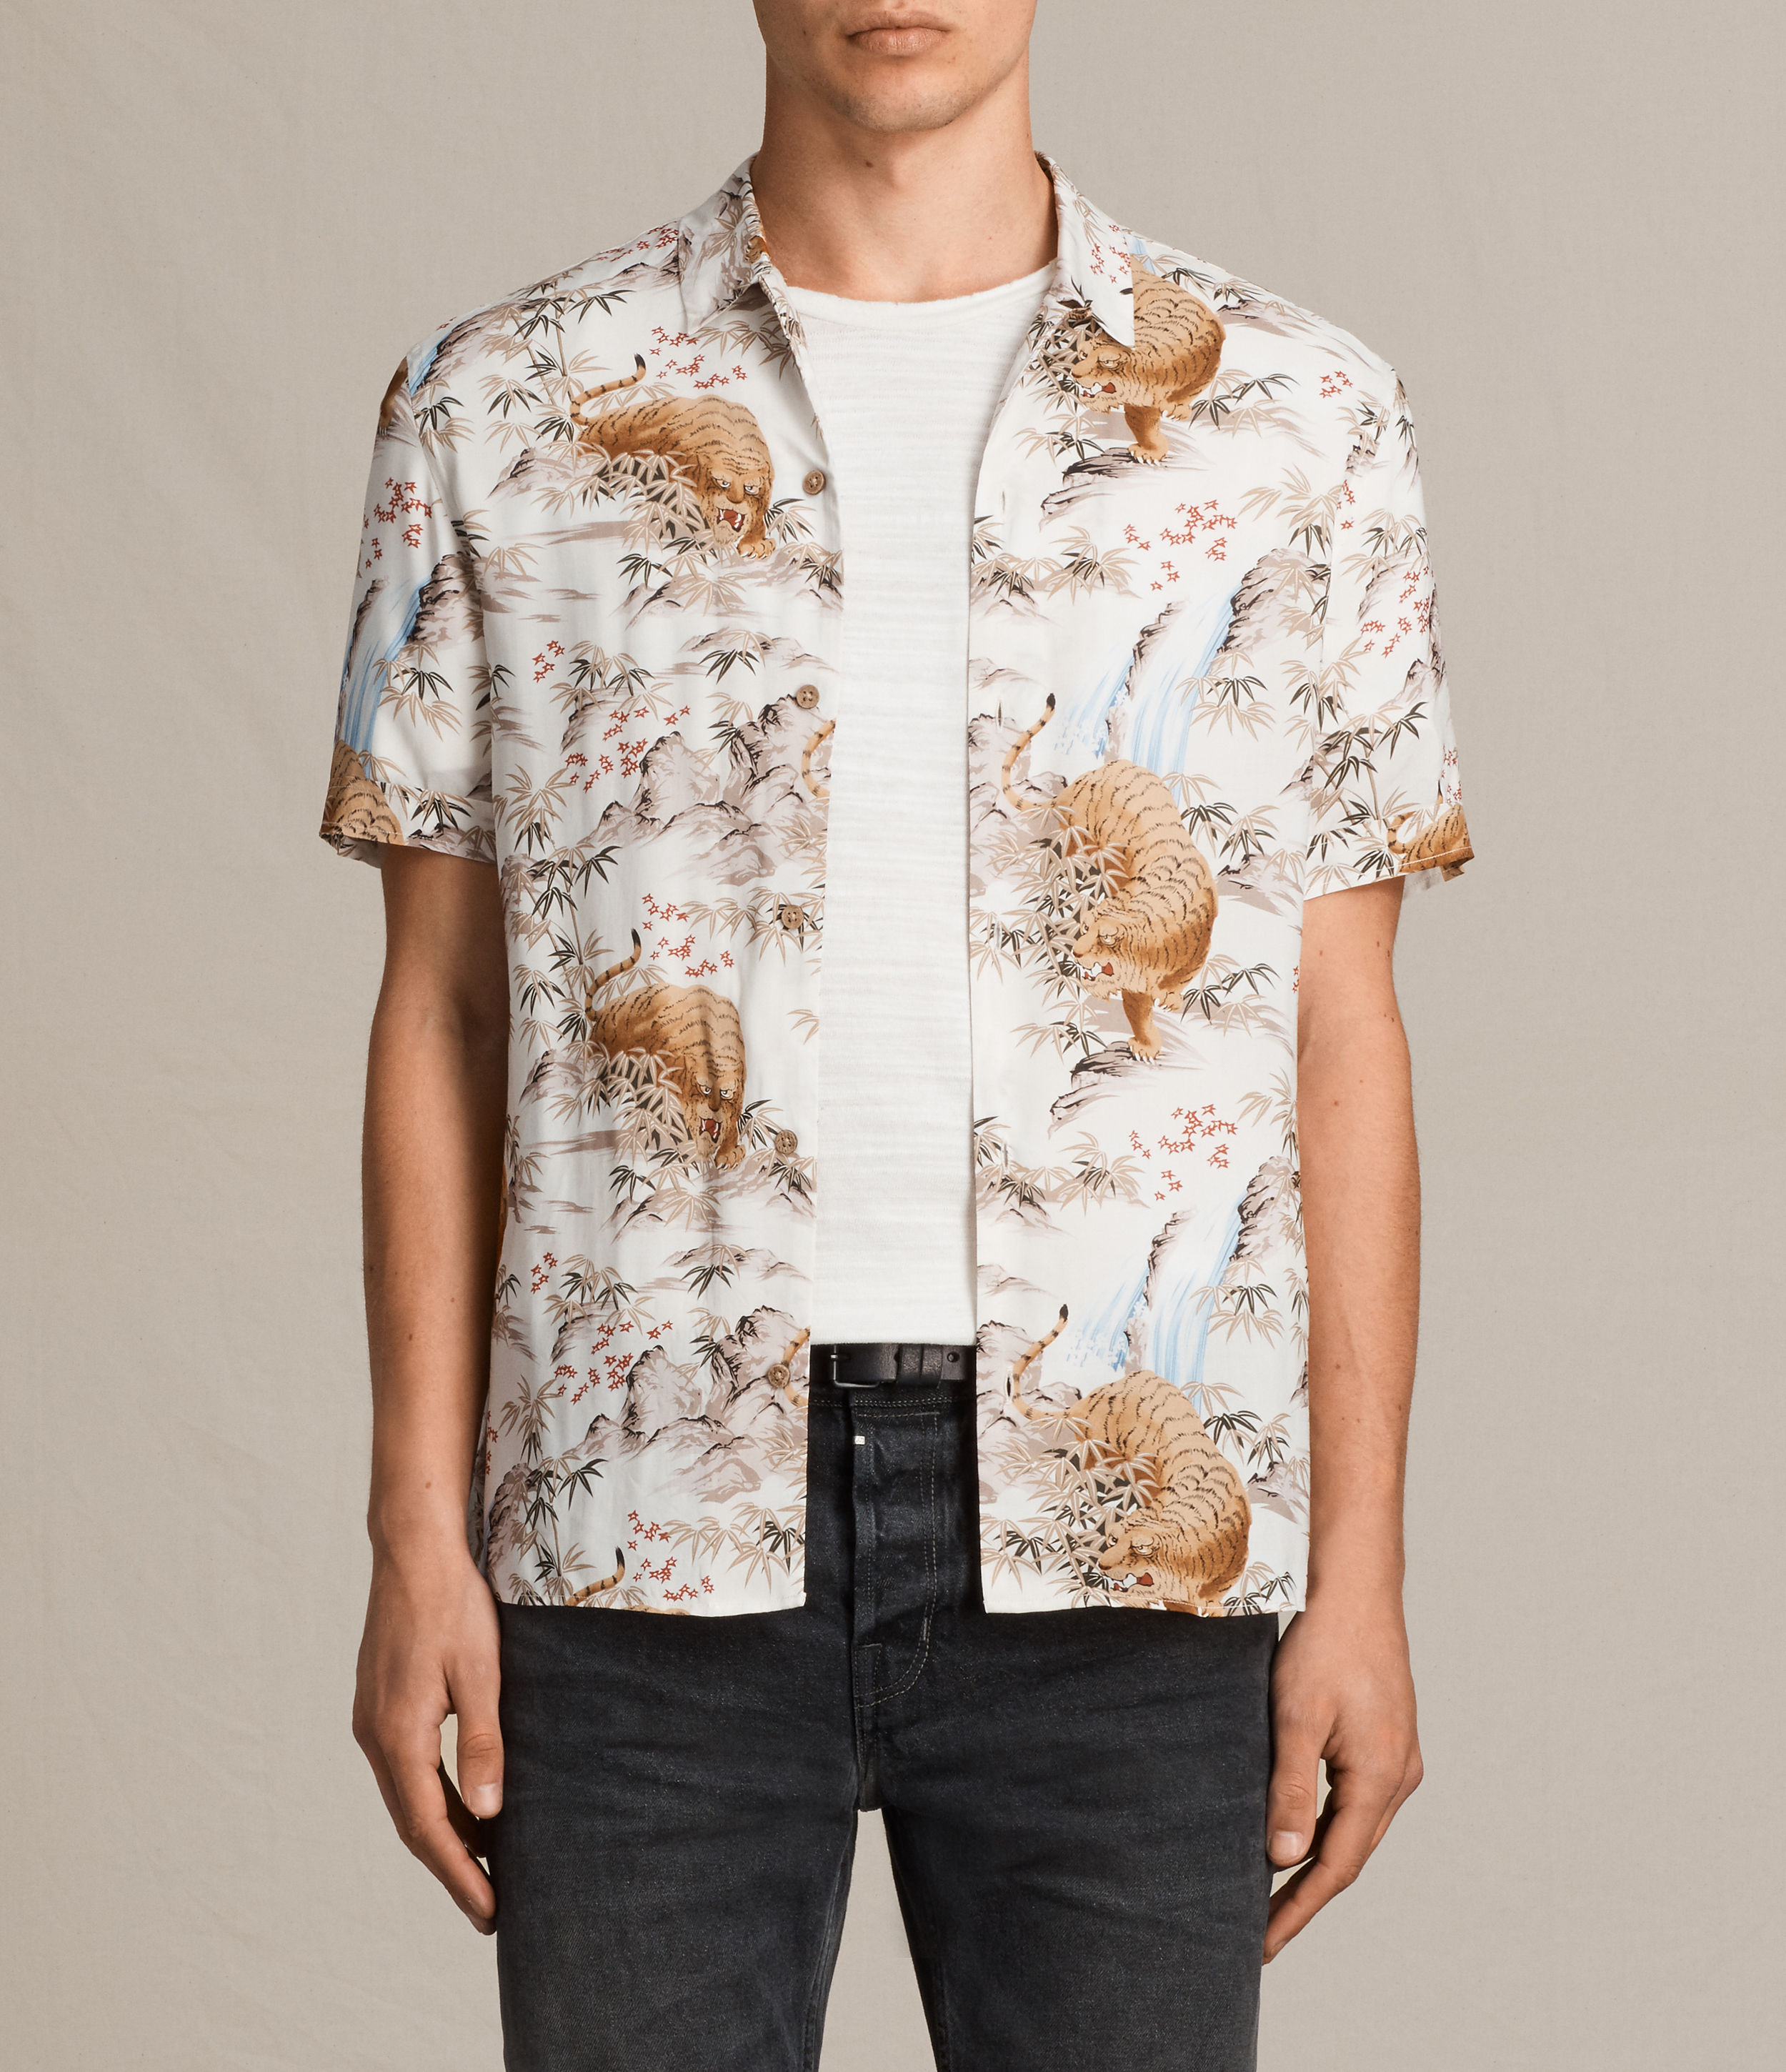 sumatra short sleeve shirt by allsaints thread